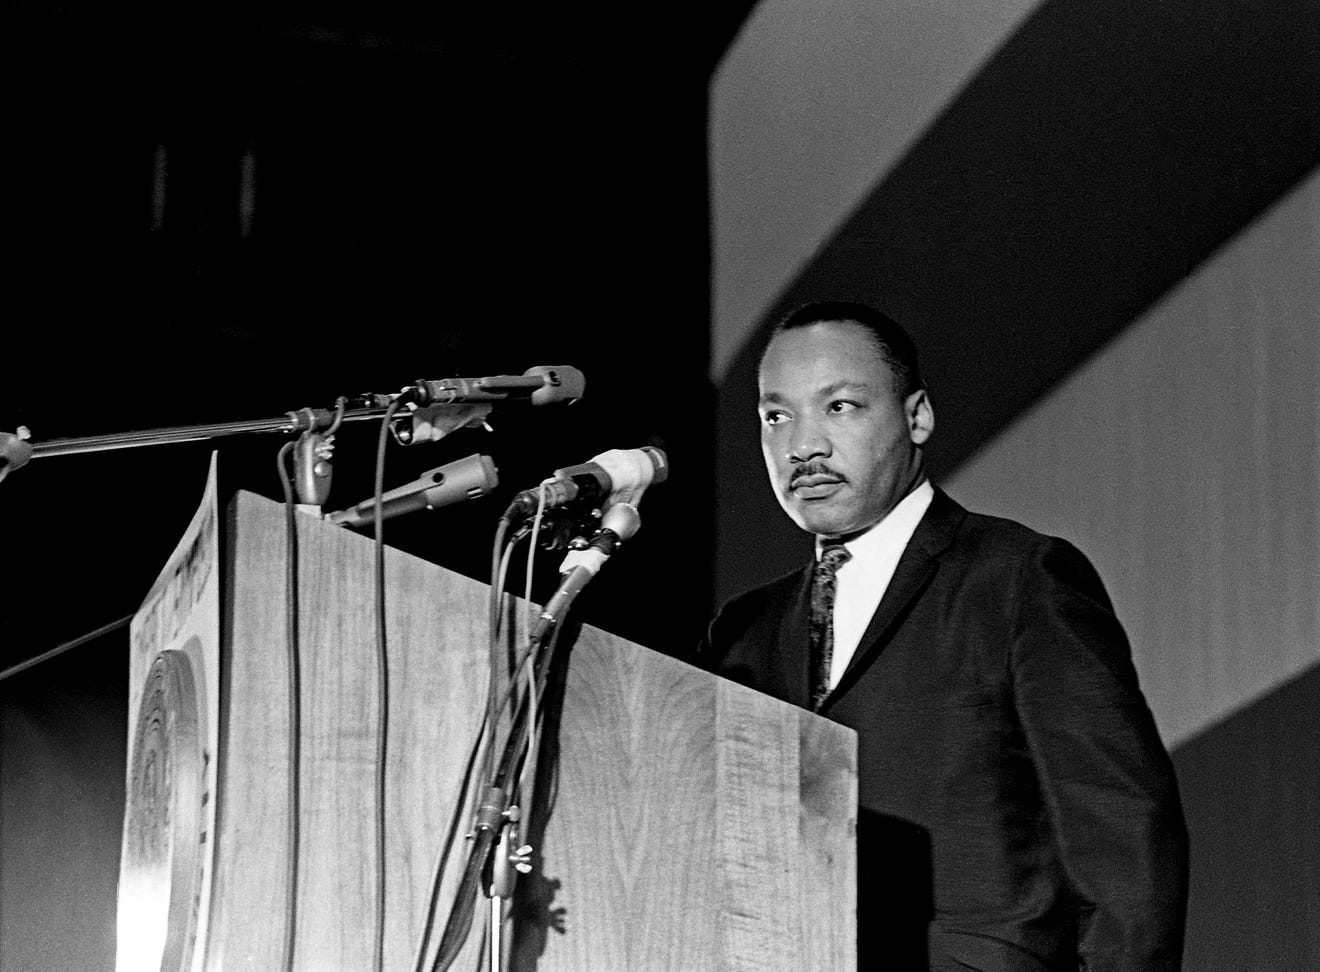 Follow Martin Luther King Jr.'s lead to end hunger and poverty